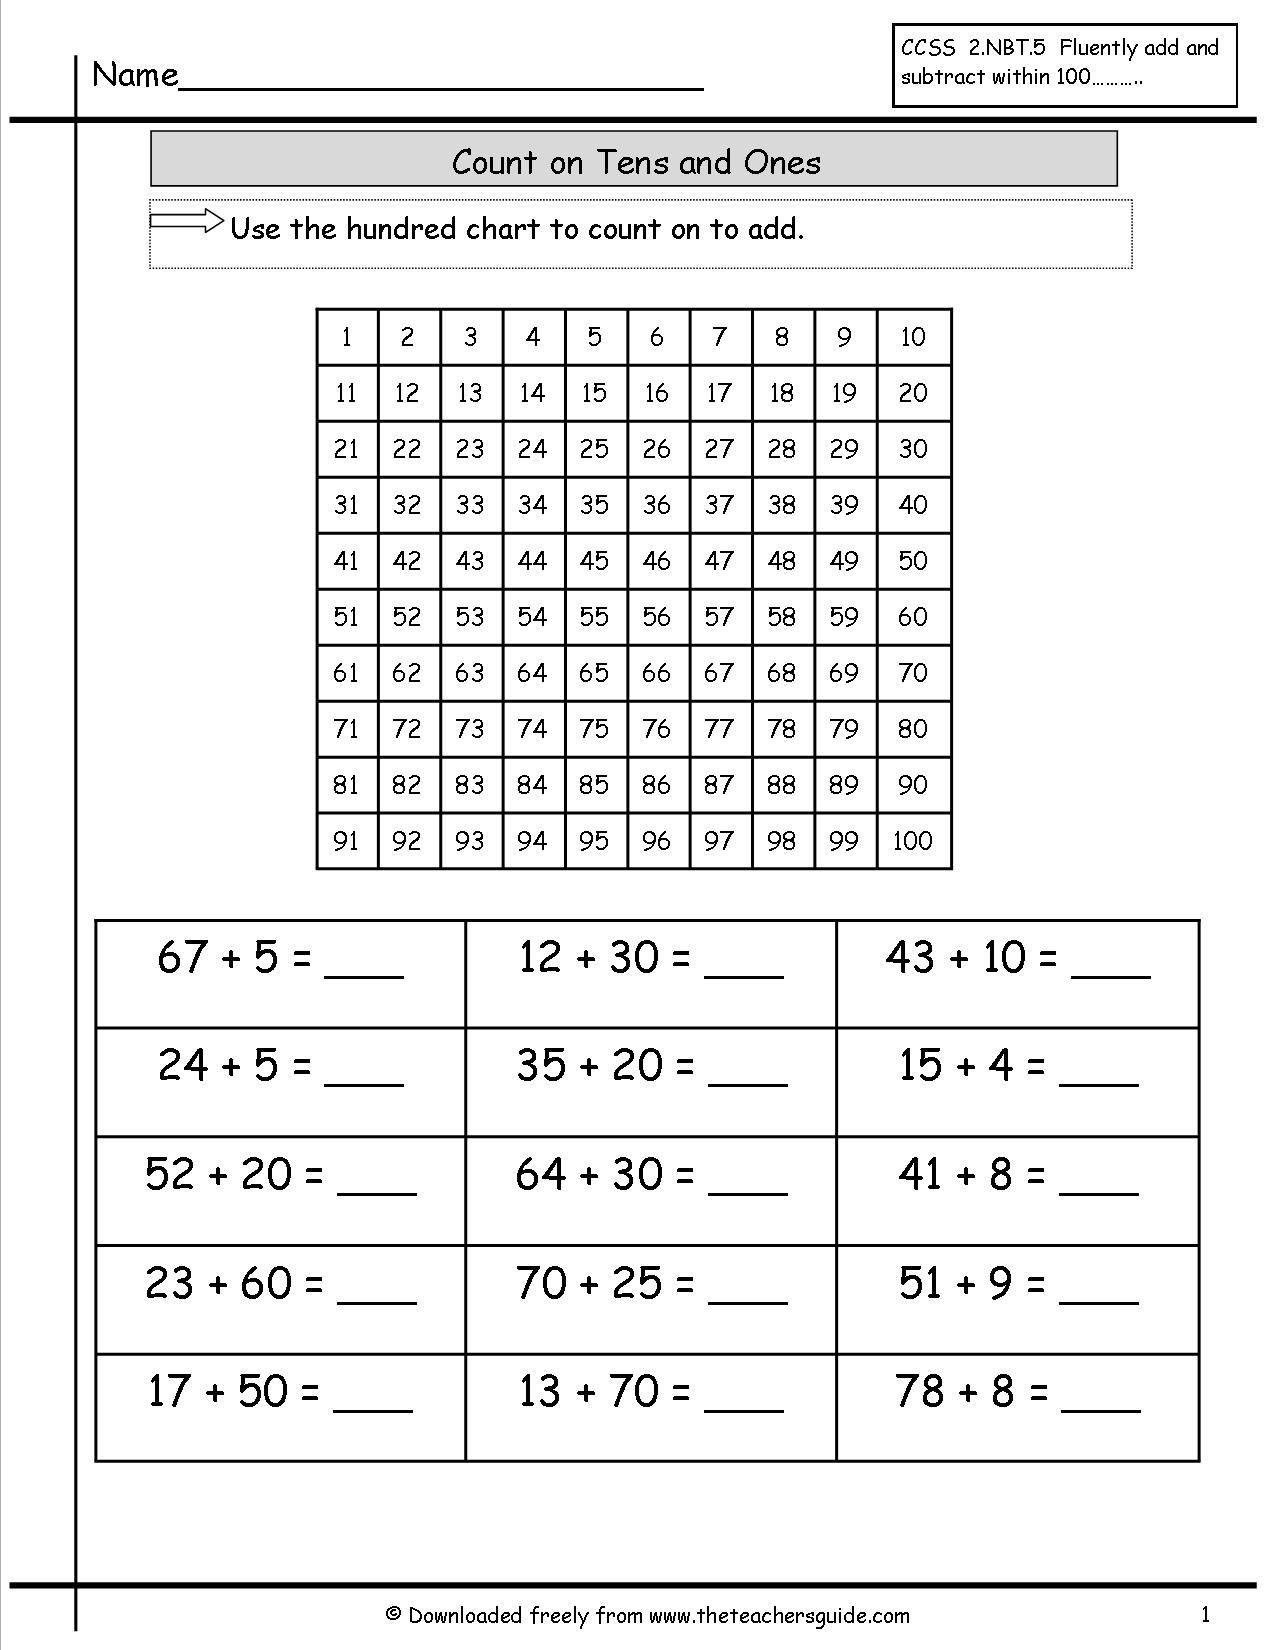 Counting In 10s Worksheet Education Template